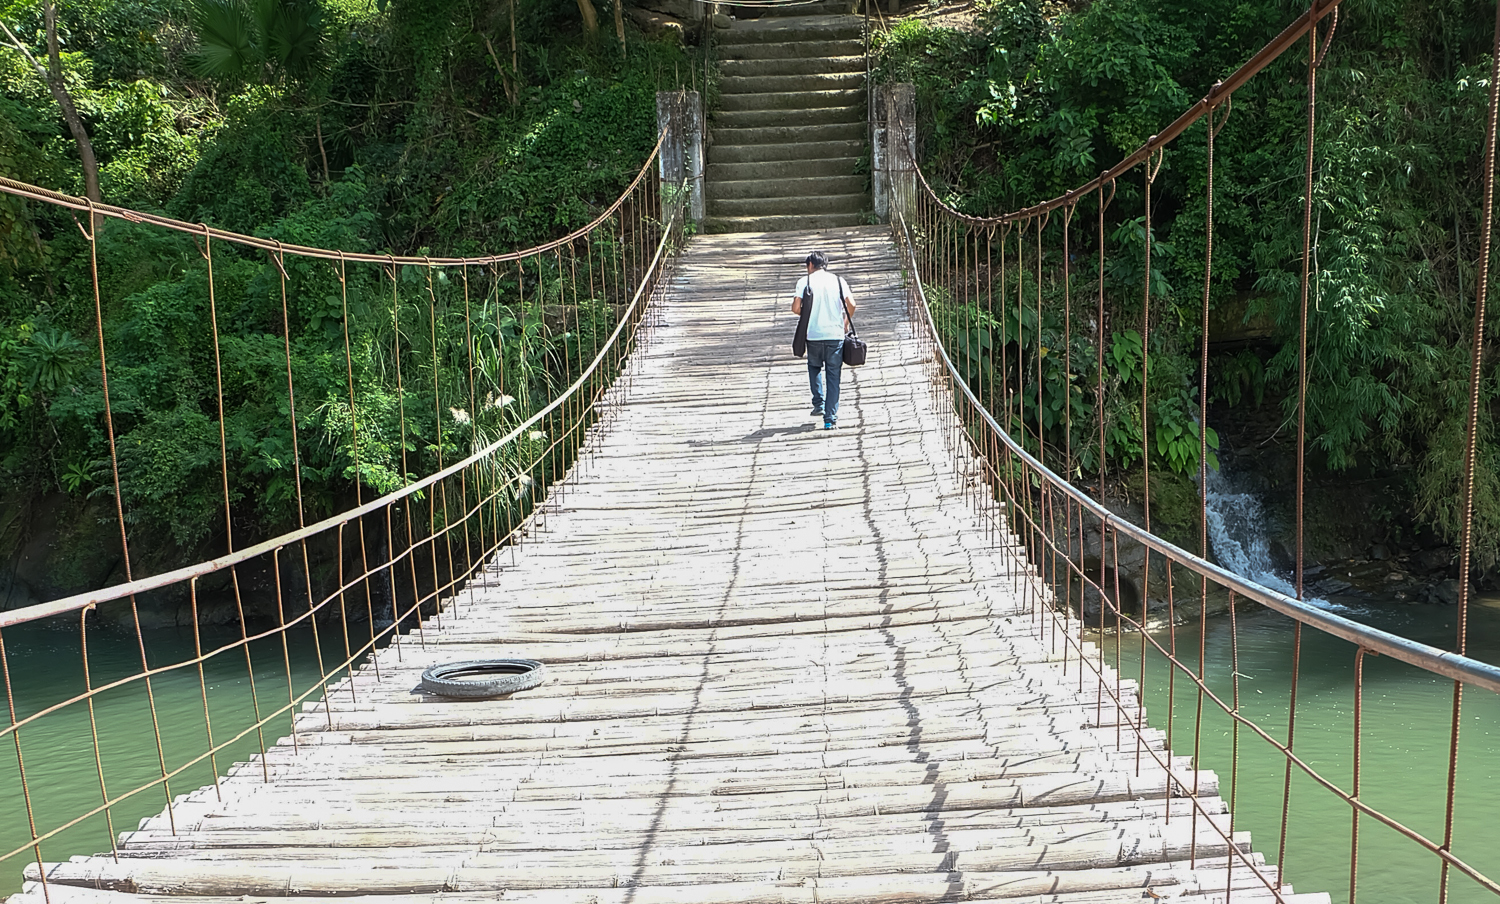 Crossing the hanging bridge in search for the oldest pottery maker in Iloilo